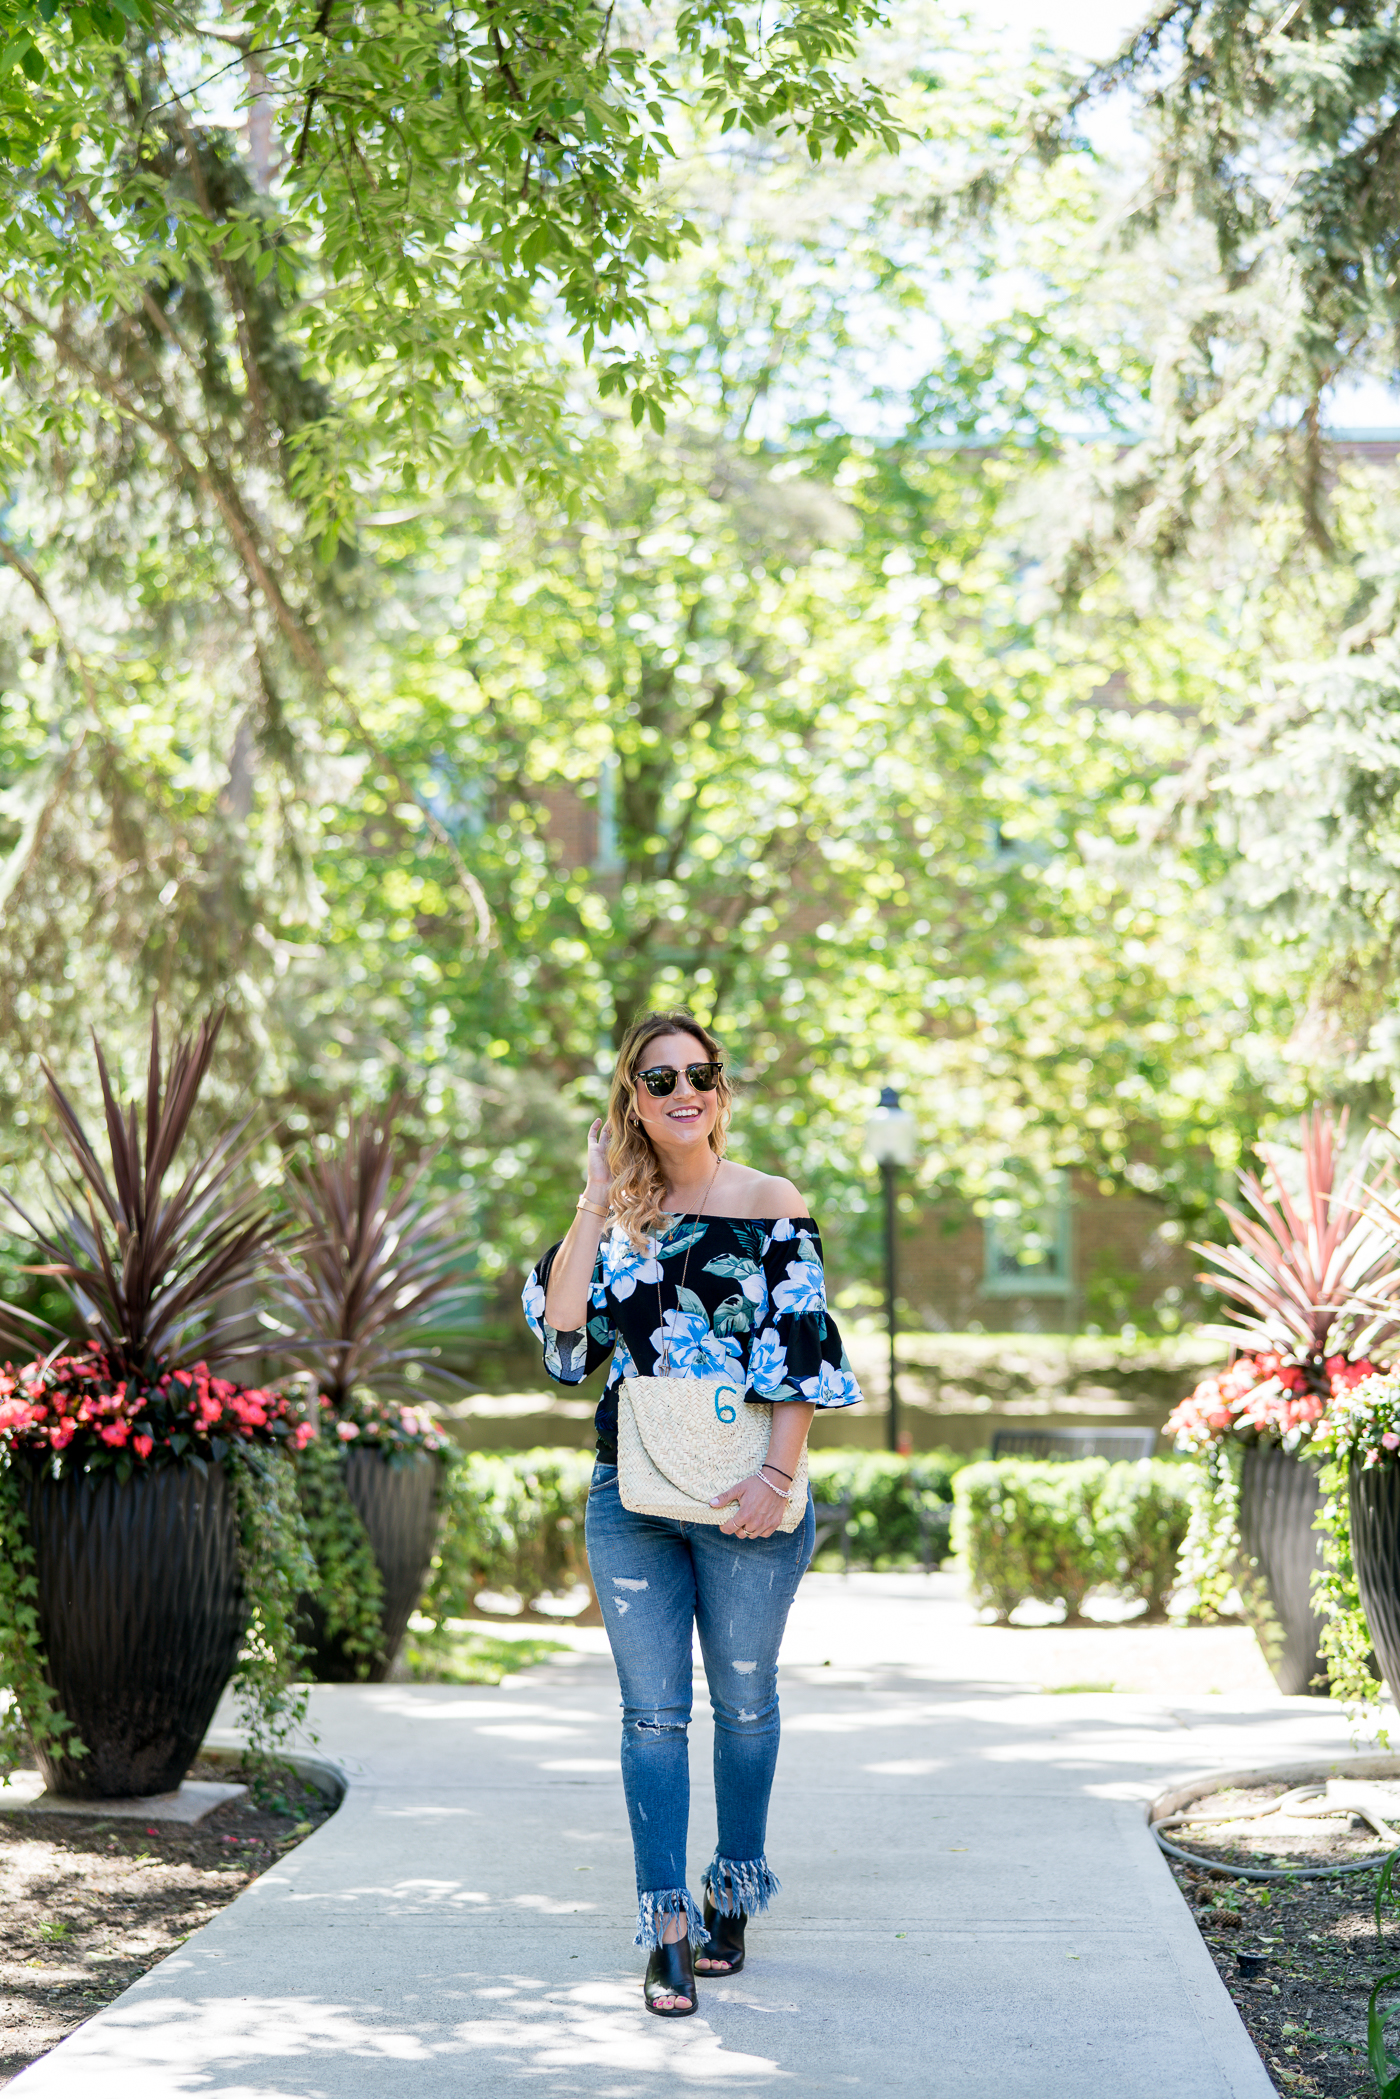 Canadian petite fashion blogger, Jackie at Something About That, wearing a floral OTS top from Banana Republic with frayed hem jeans from Zara